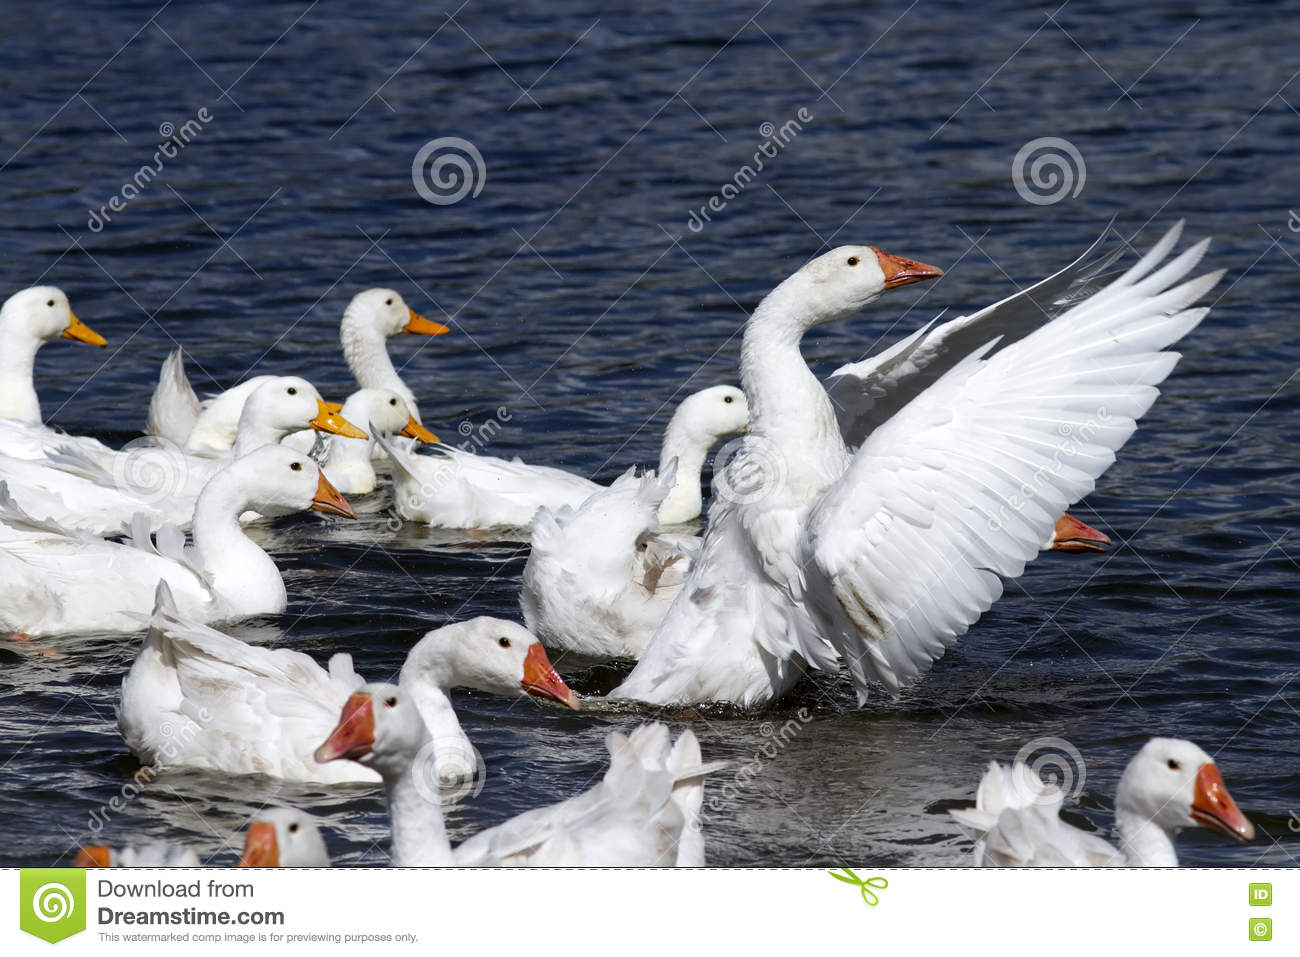 White geese and ducks swim and dive in the pond